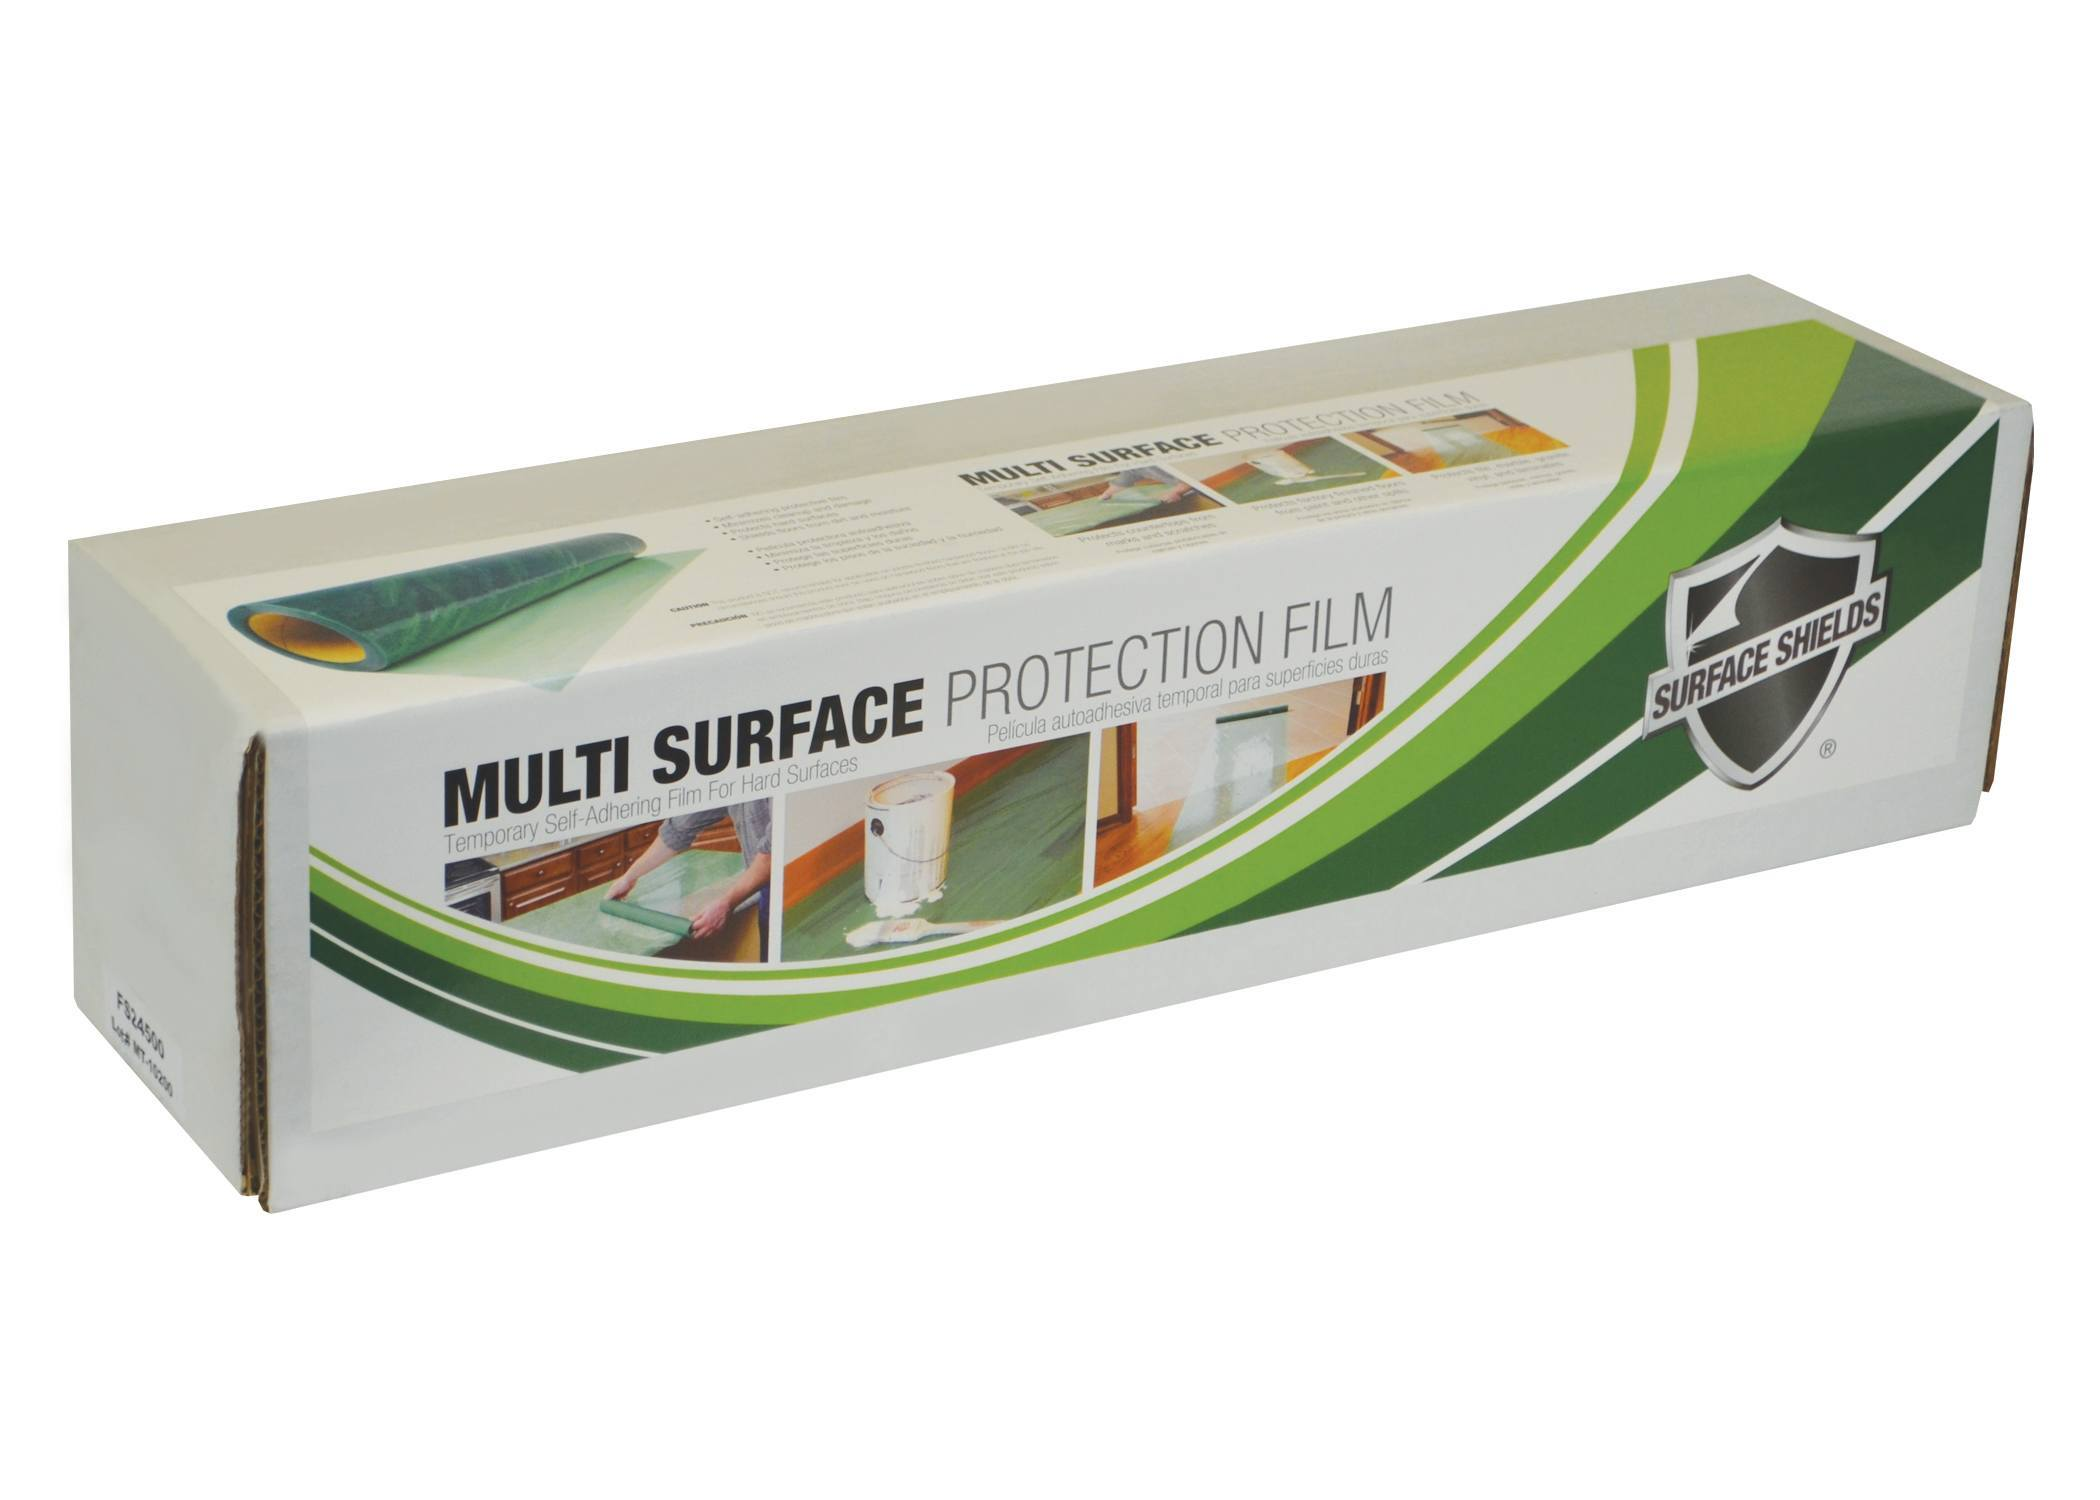 Multi Surface Protection Film